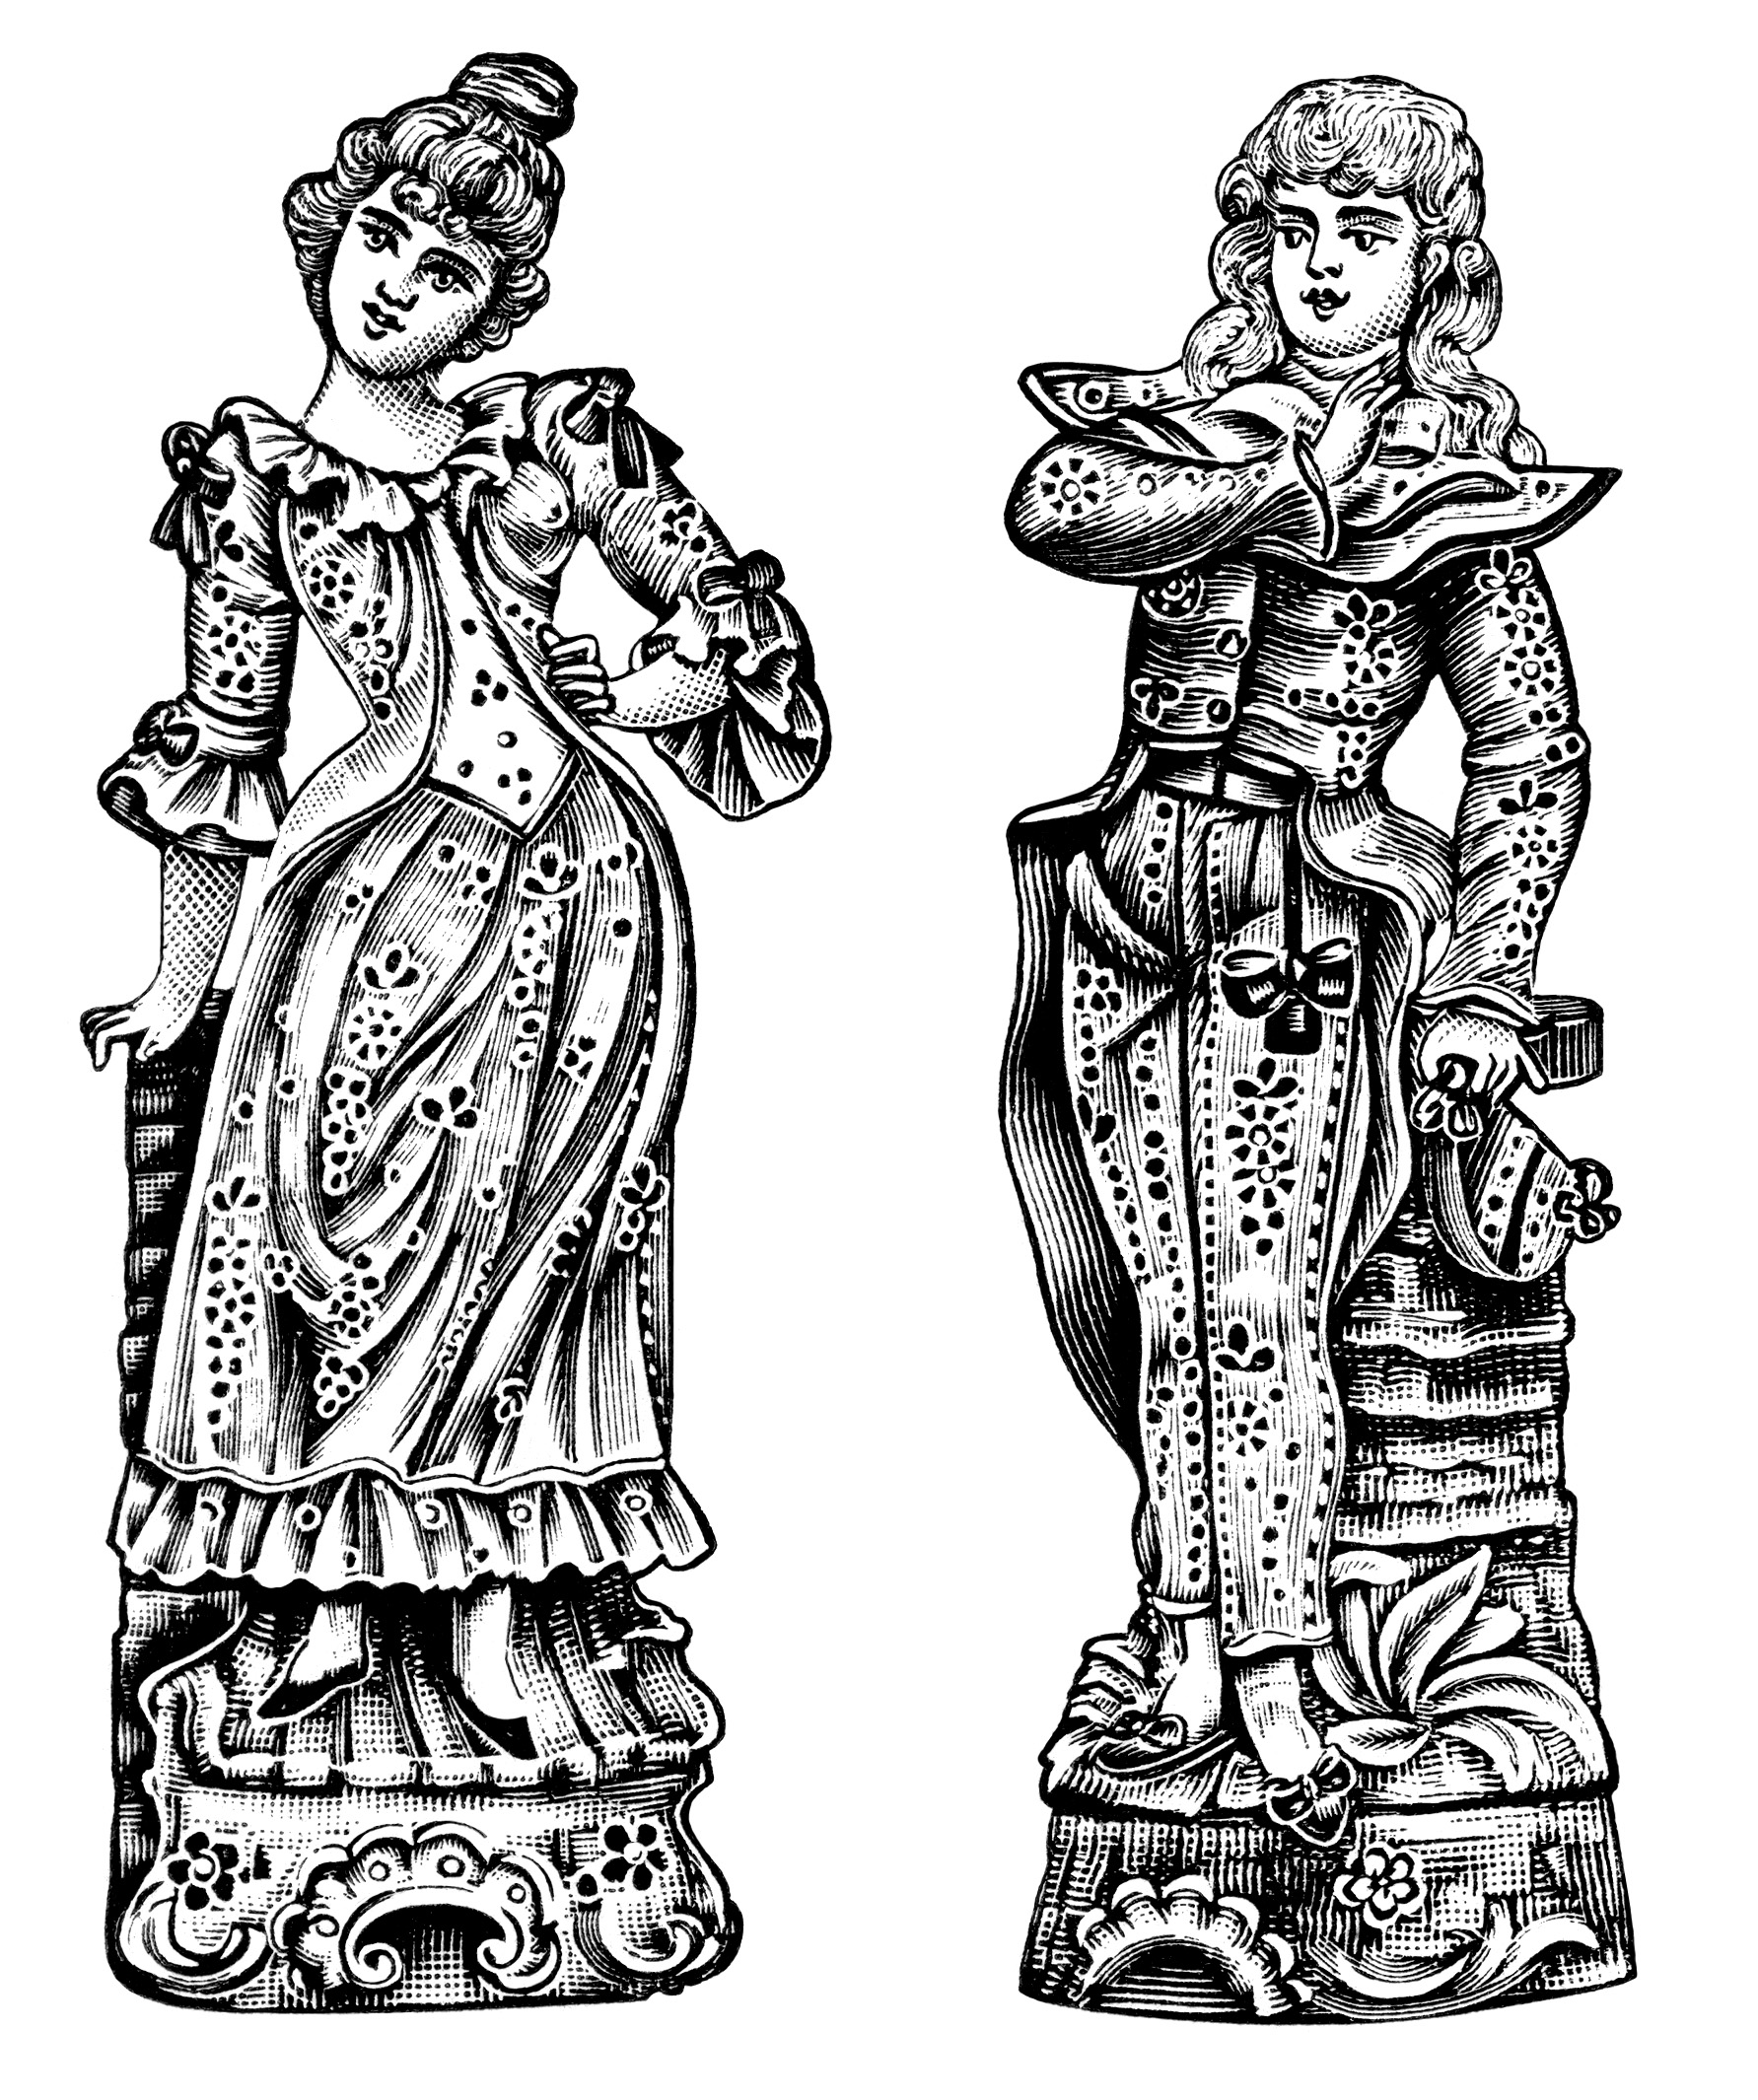 Victorian clip art, antique bisque figure, black and white graphics free, vintage man and woman clip art, Victorian couple illustration